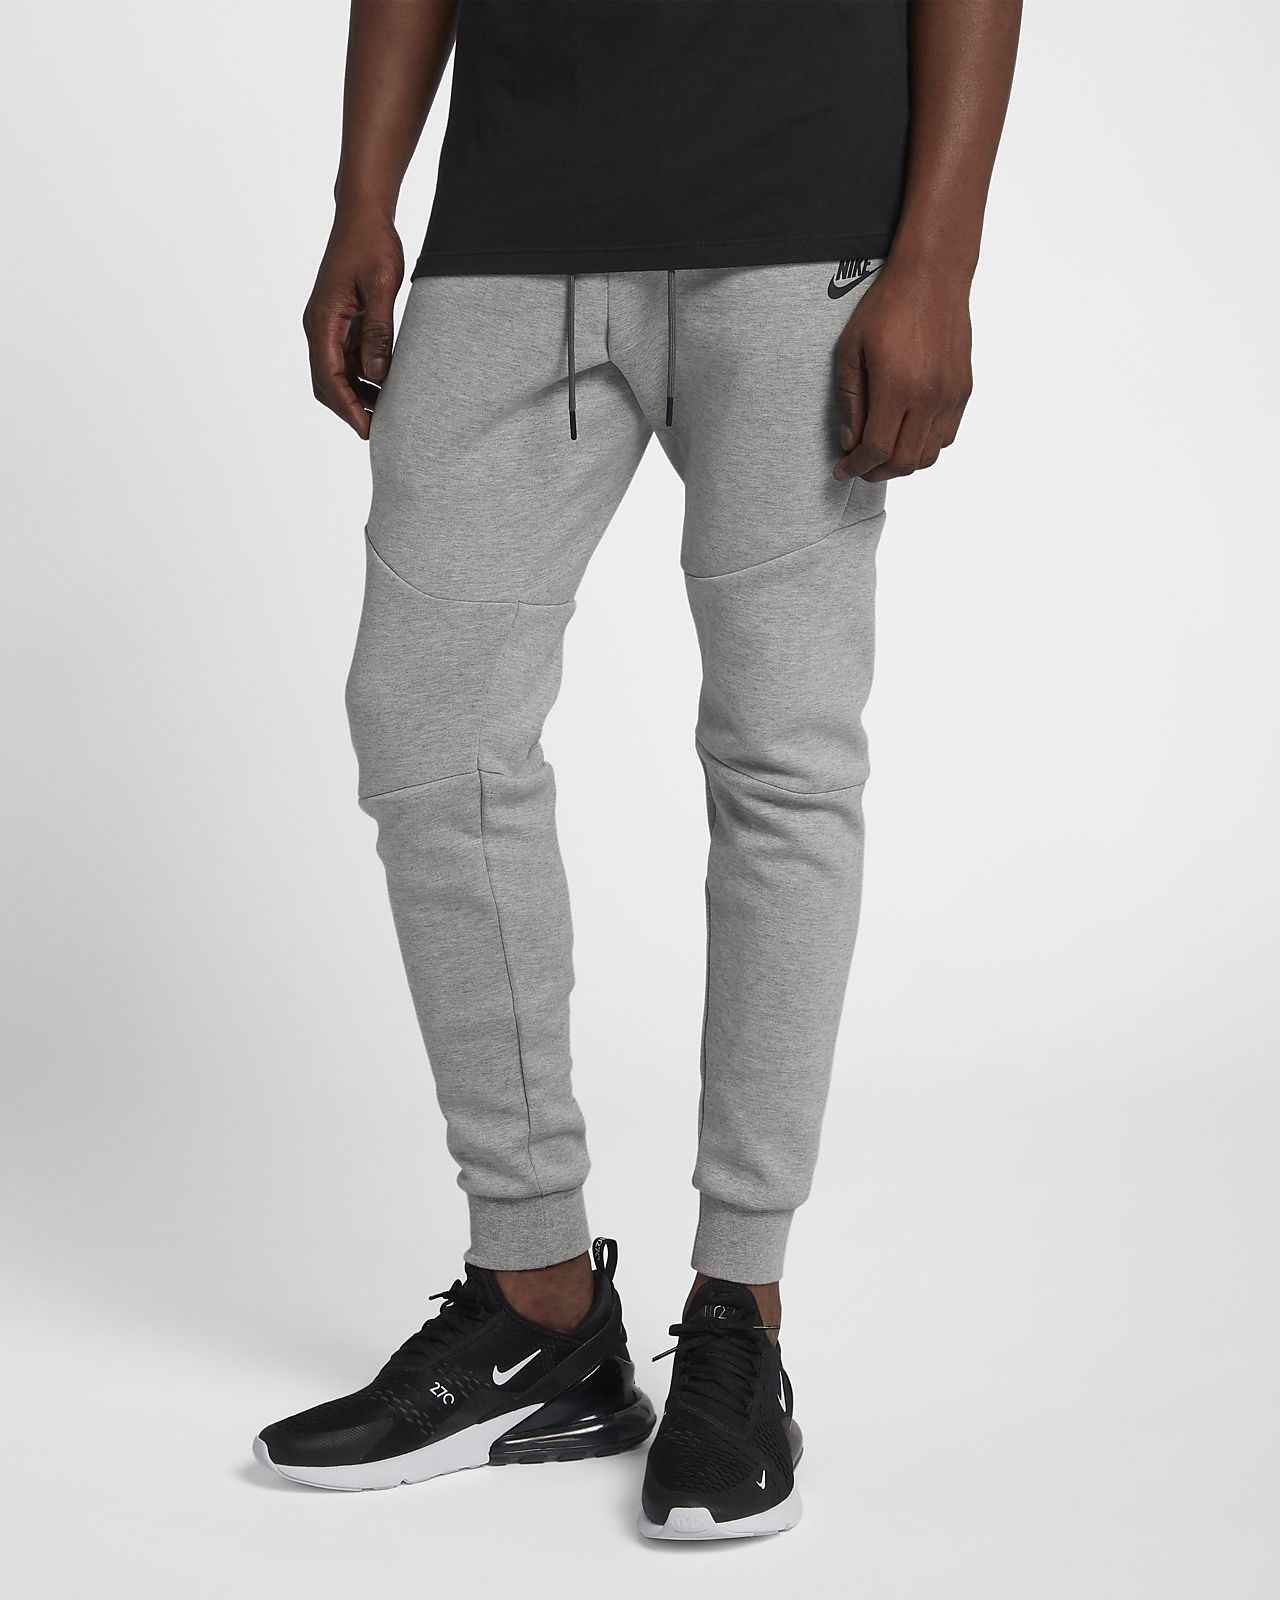 05844de578 Nike Sportswear Tech Fleece Men's Joggers. Nike.com